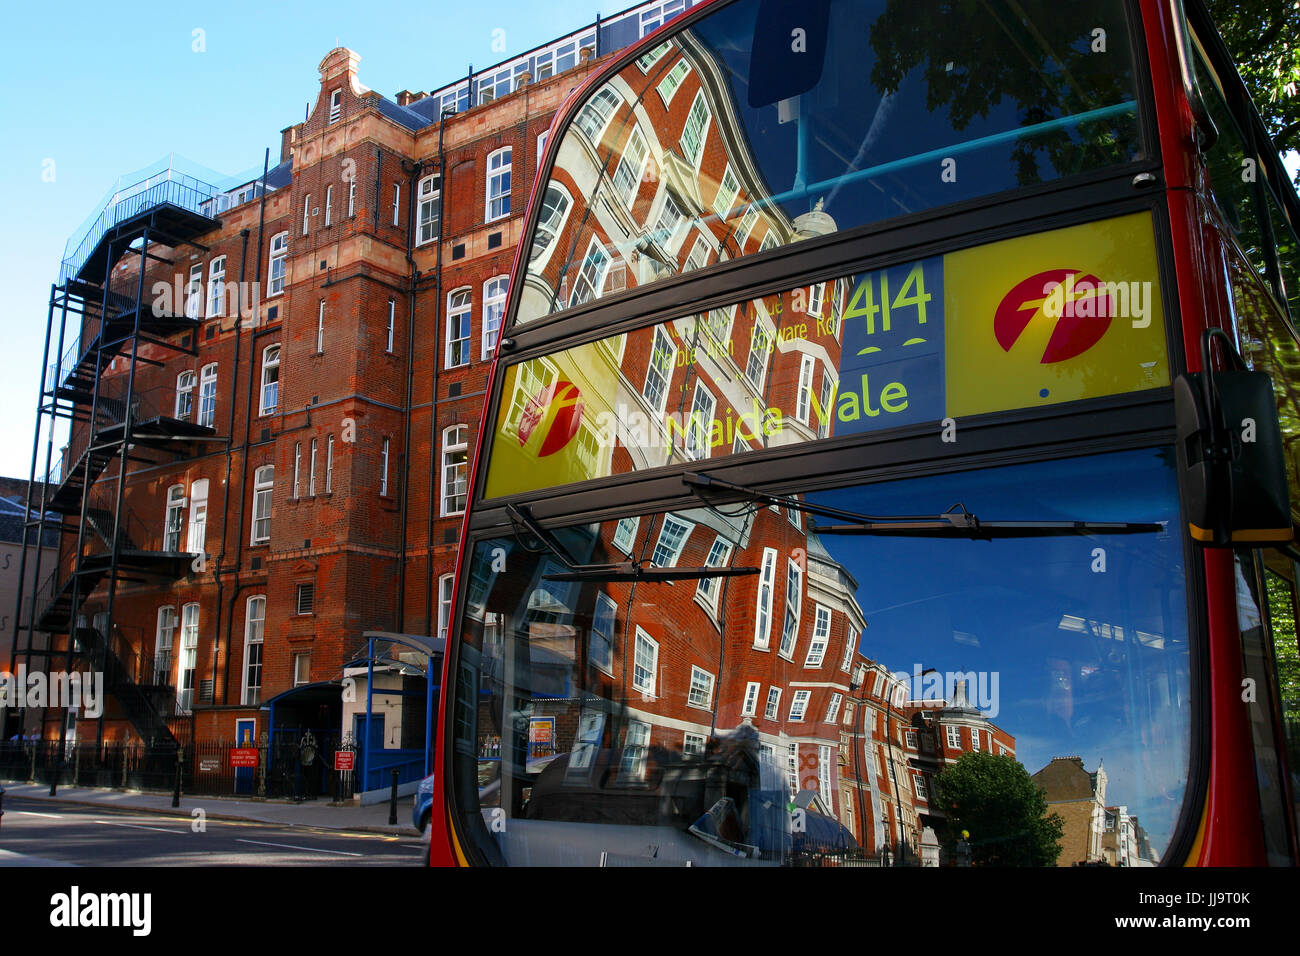 View of rear of double-decker bus and townhouse, Kings Road, Chelsea, London, England, UK - Stock Image